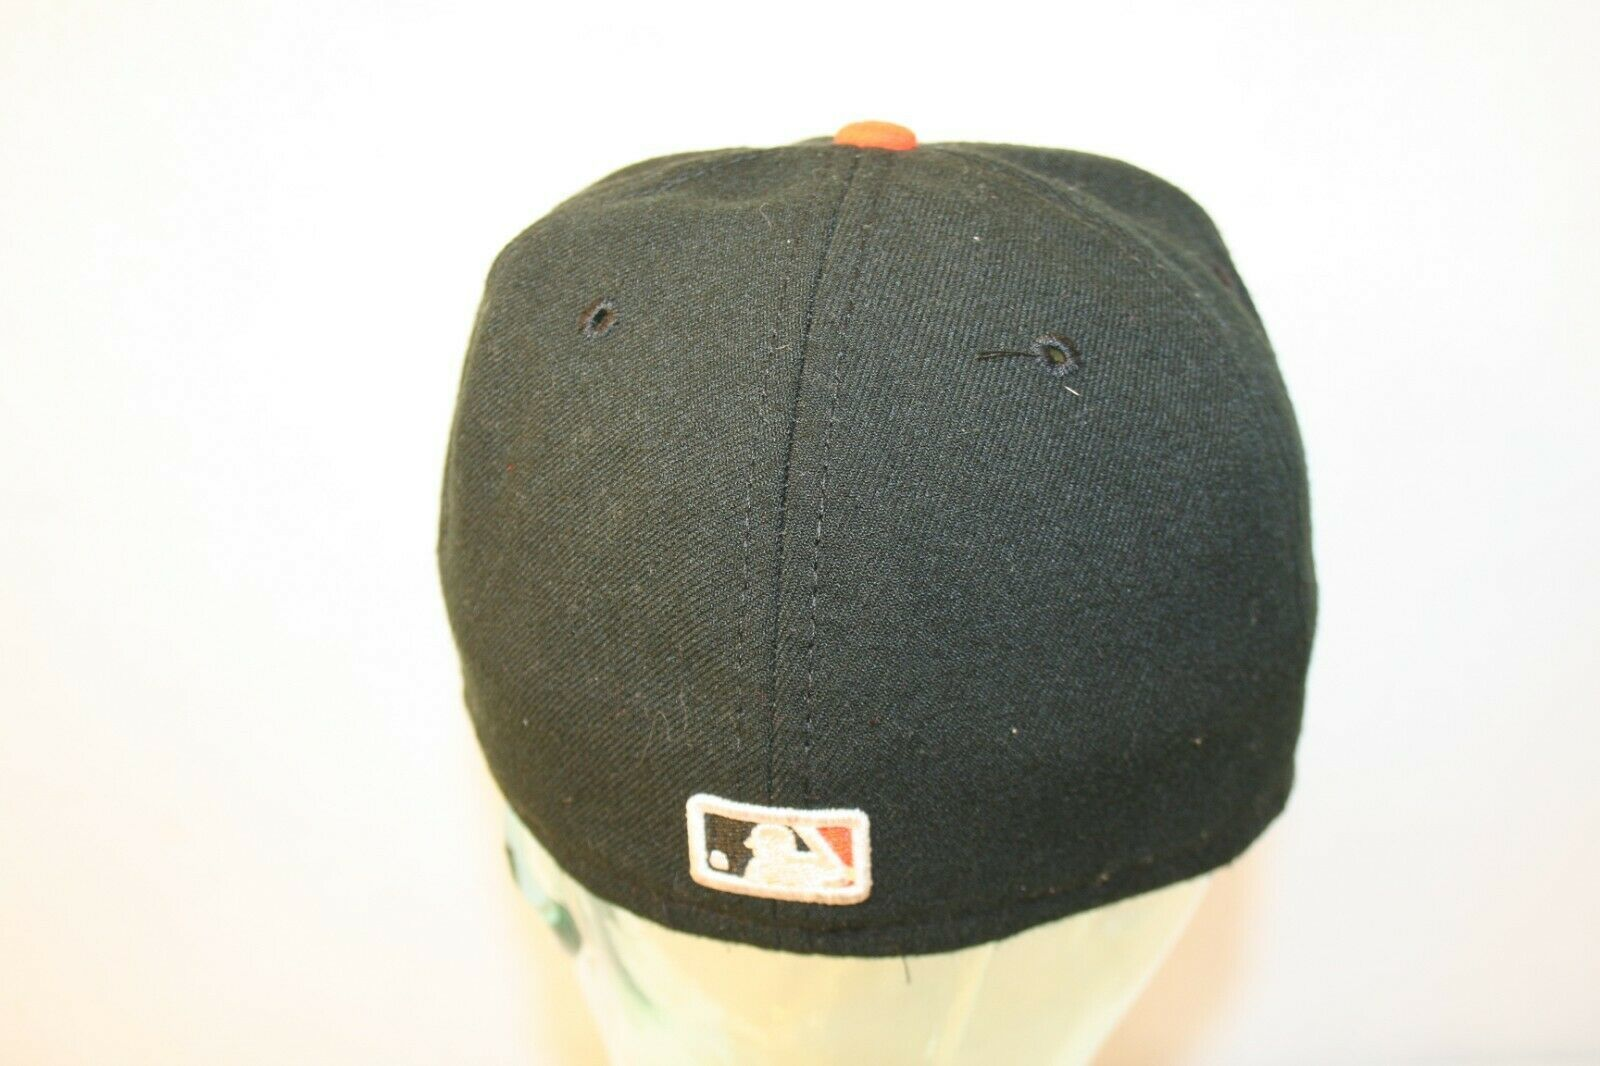 New Ear 59fifty Baltimore Orioles O's fitted 7 1/4 Black Orange bill Dad Cap Hat image 3